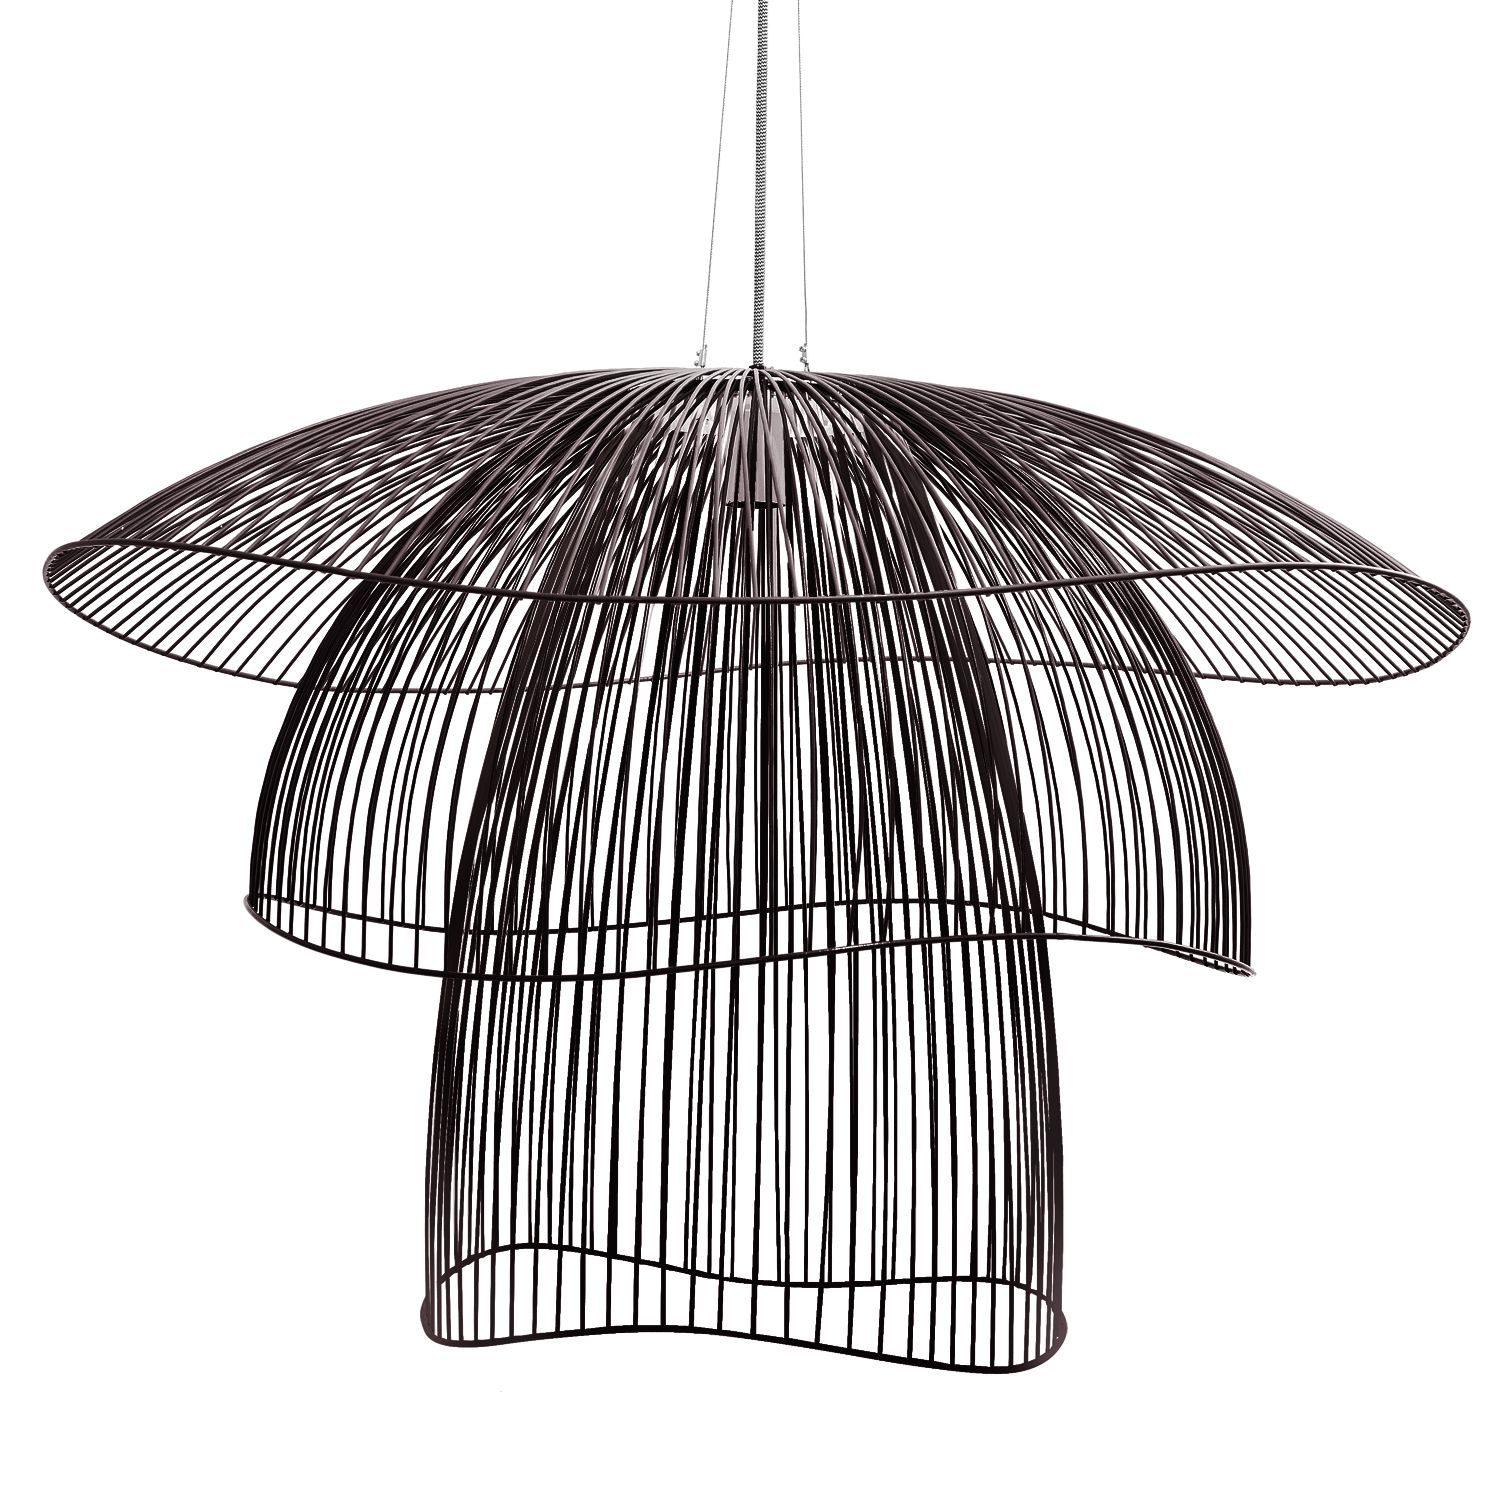 Suspension fil de fer Noir ˜100cm PAPILLON